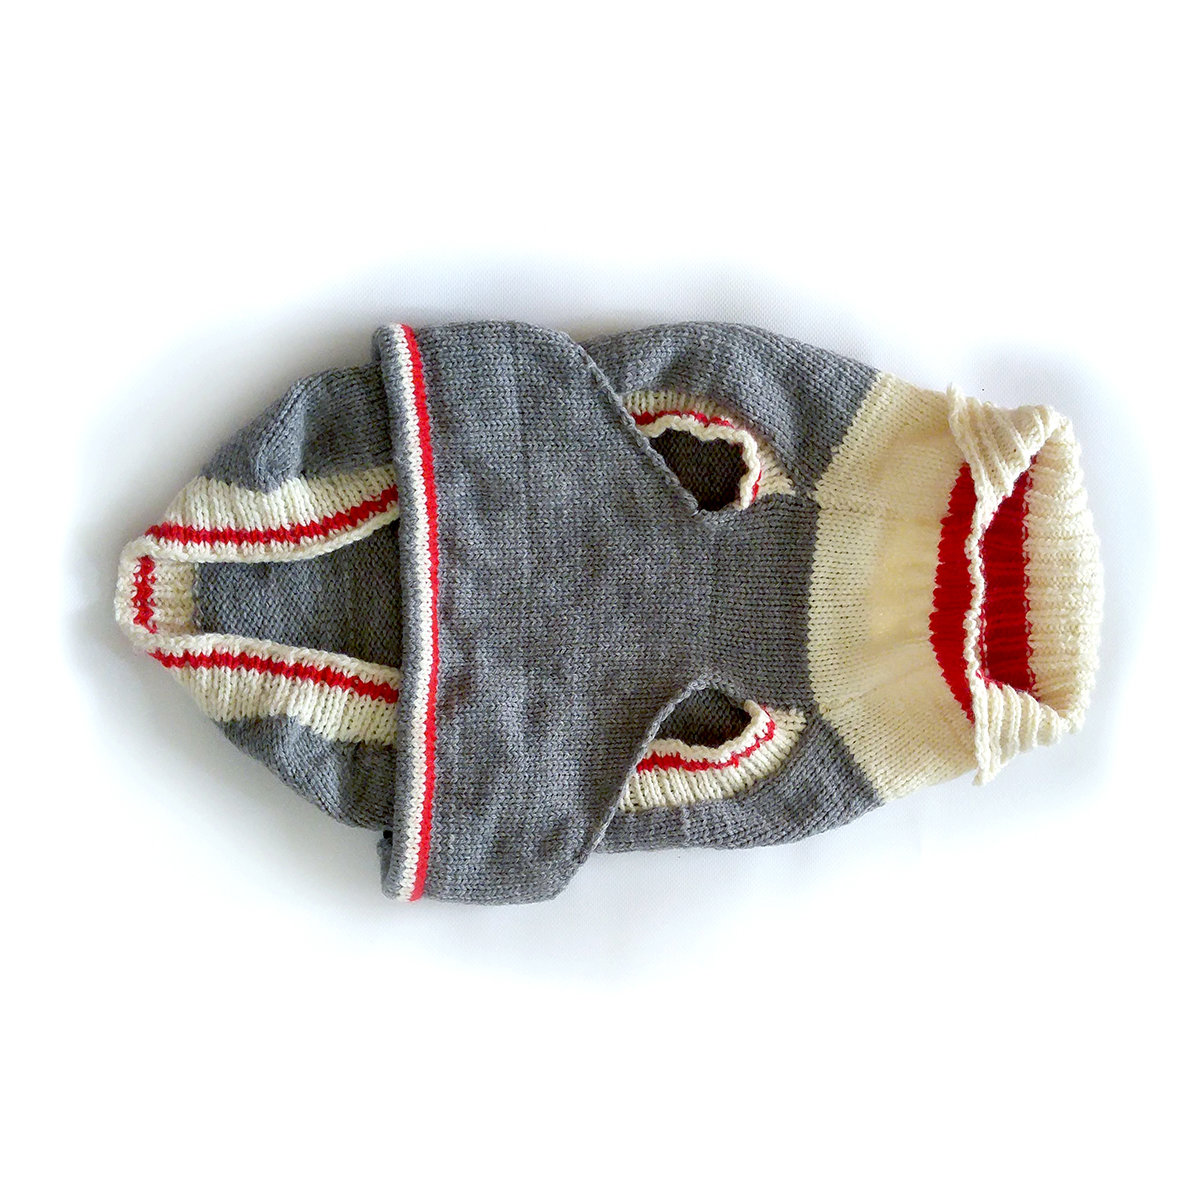 The Sock Monkey Sweater